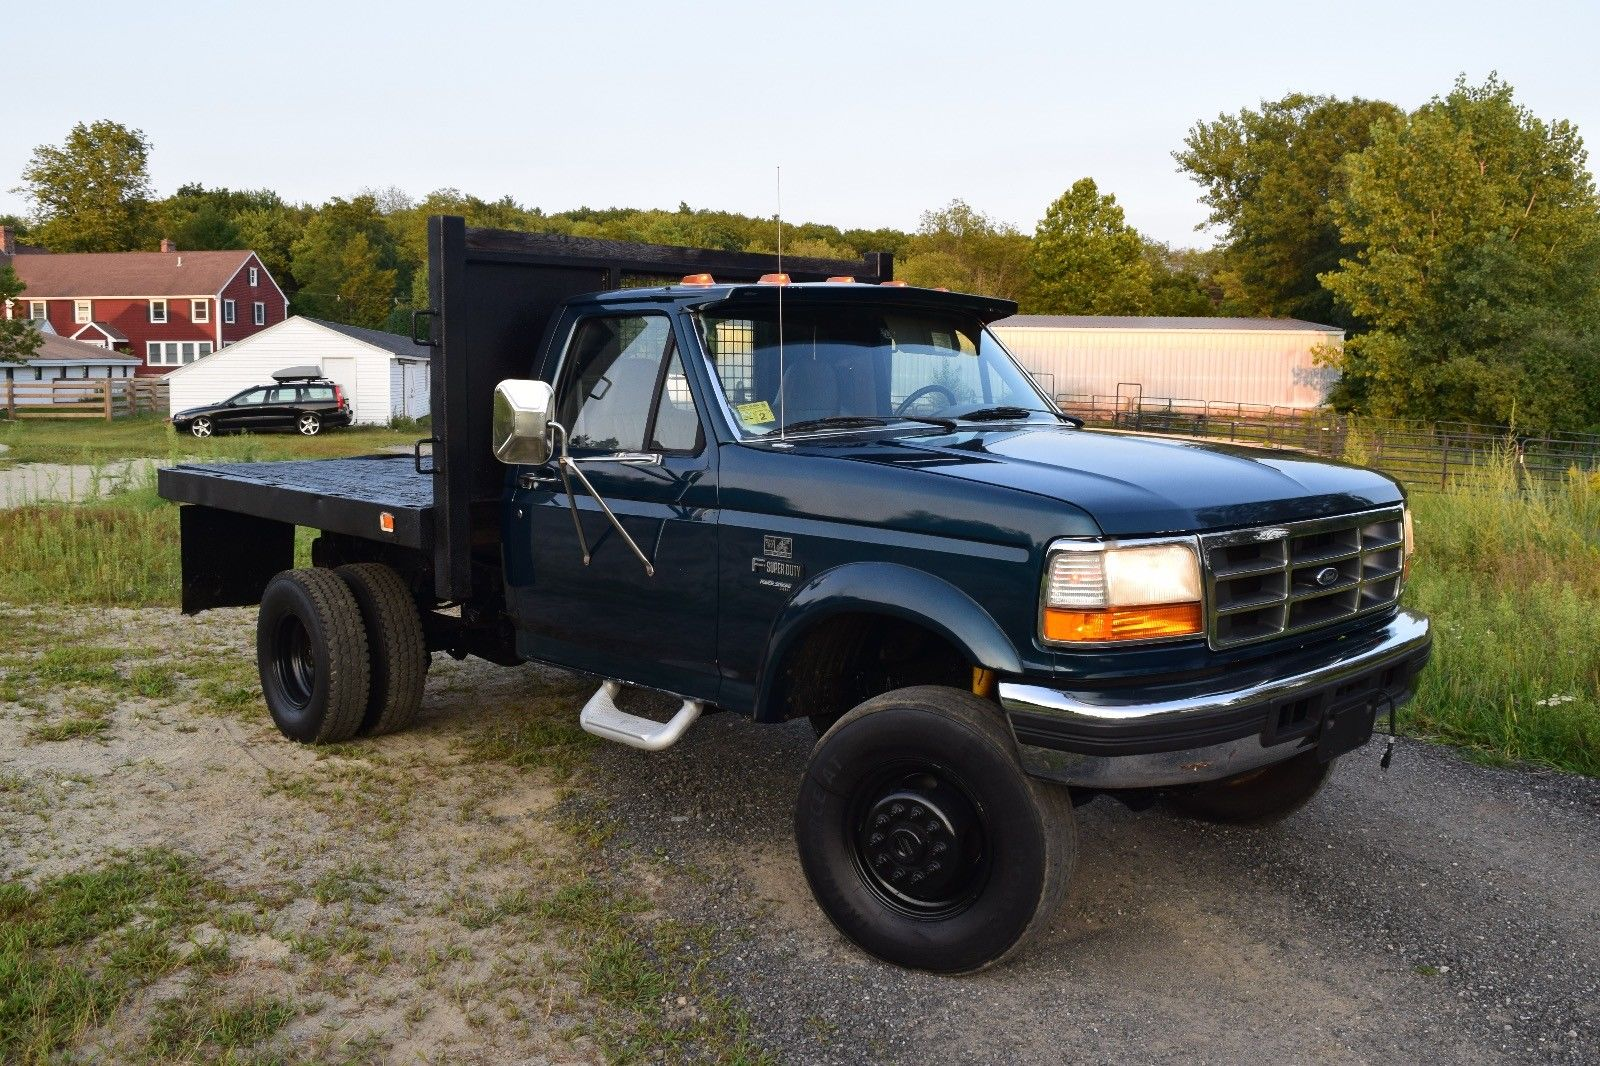 Low Mileage Ford F Xl Monster For Sale on Ford F 250 Super Duty Bed